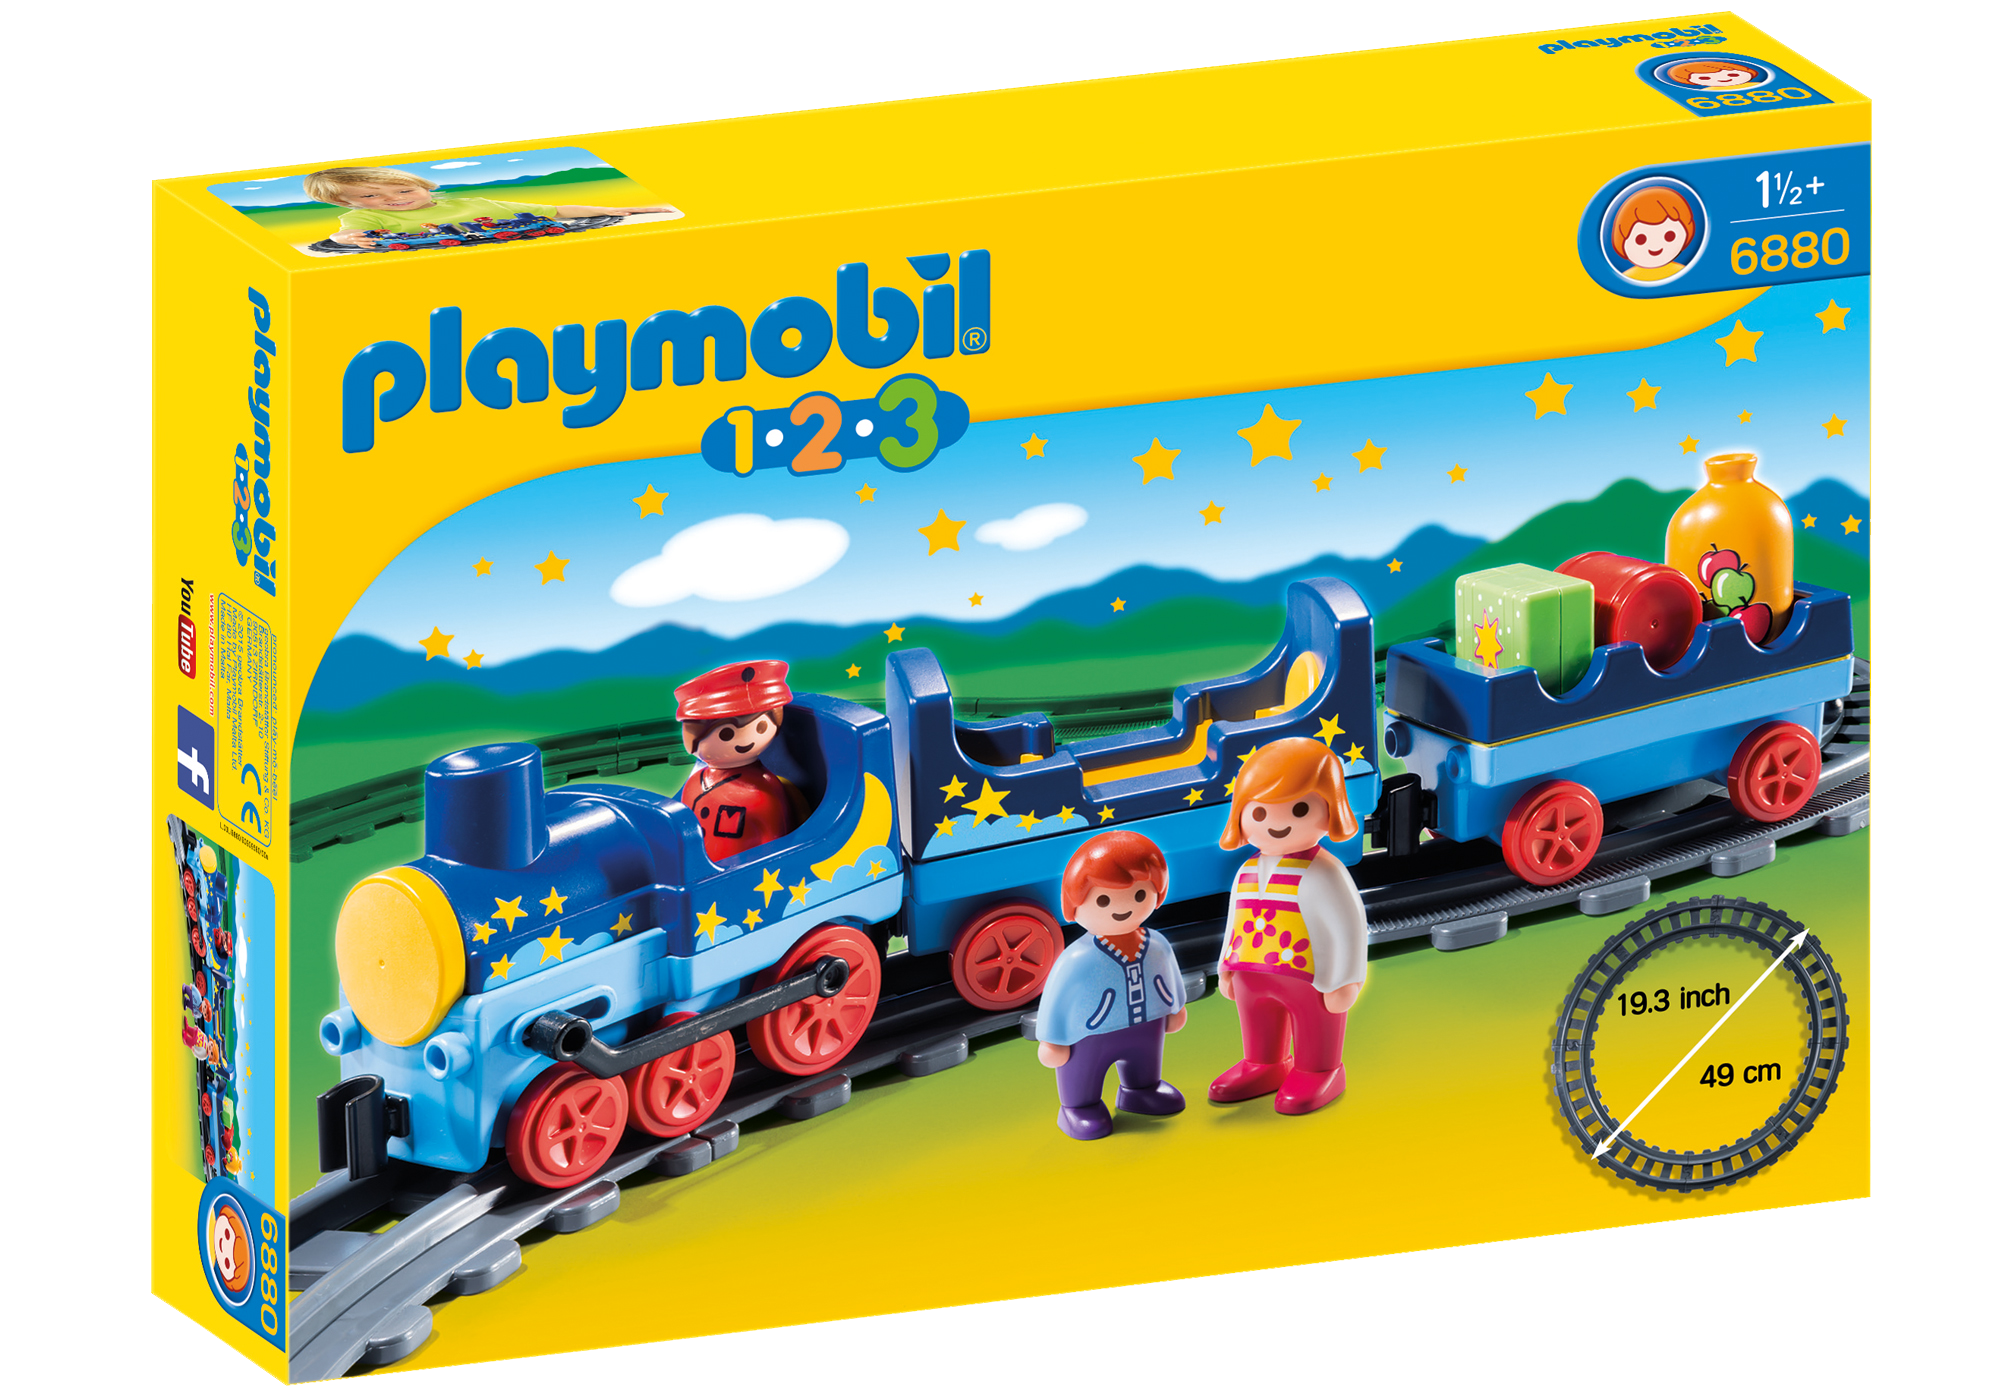 http://media.playmobil.com/i/playmobil/6880_product_box_front/Night Train with Track